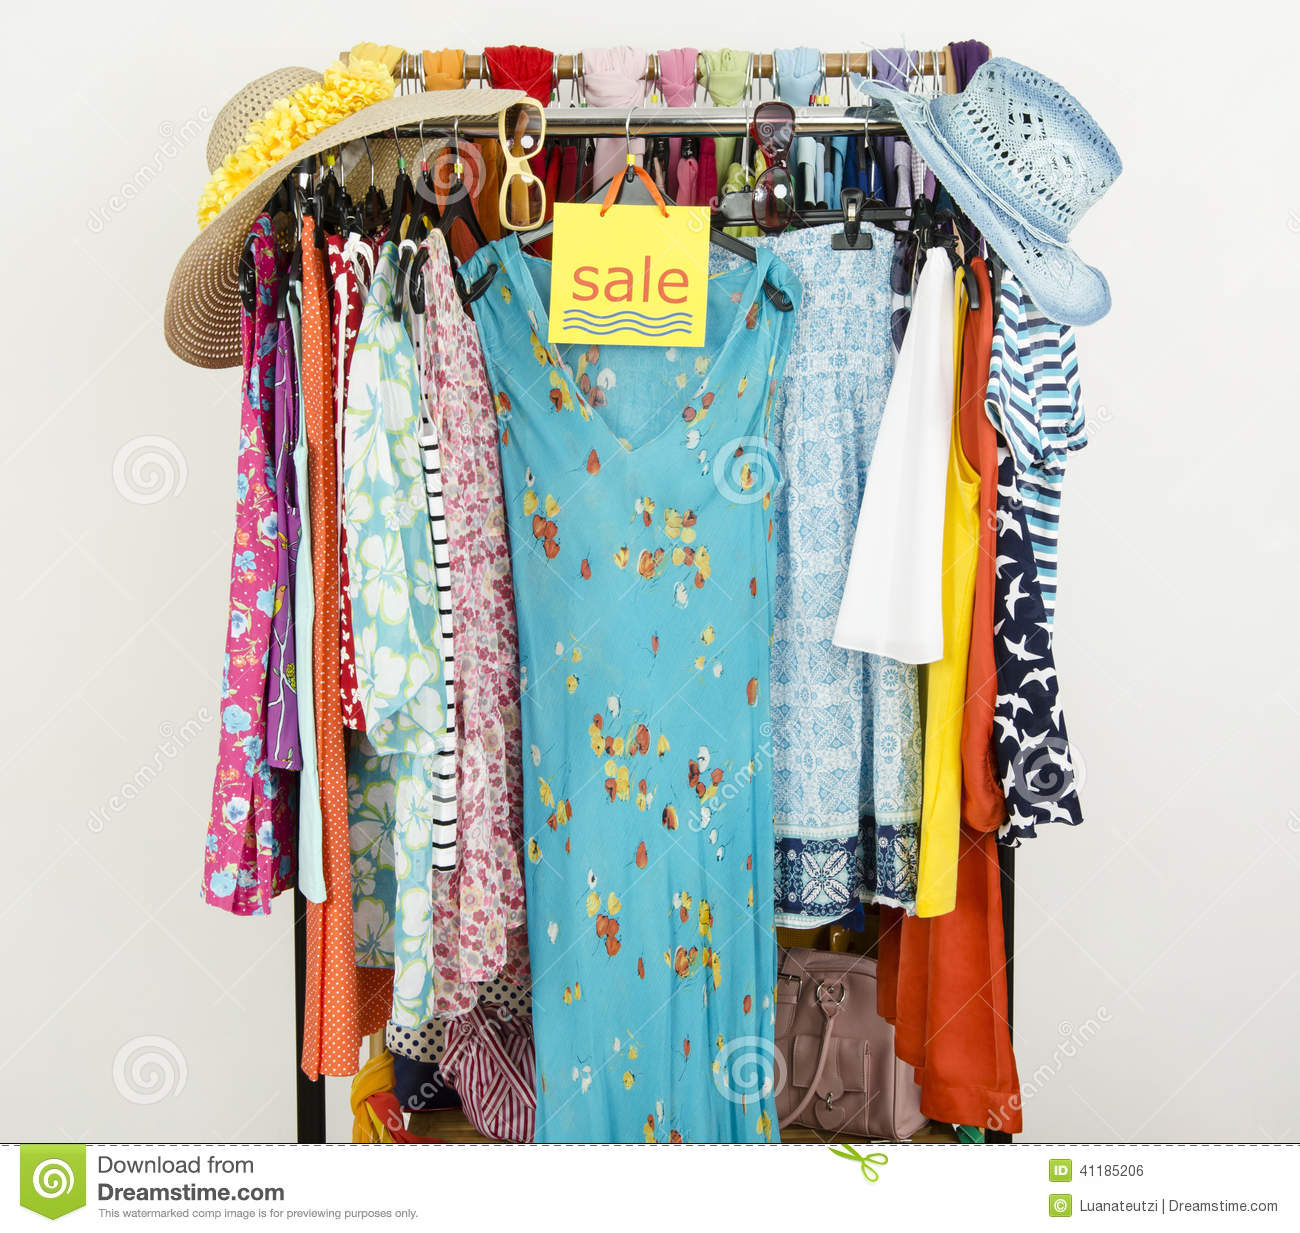 Cute Summer Outfits Displayed On Hangers With A Big Sale ...